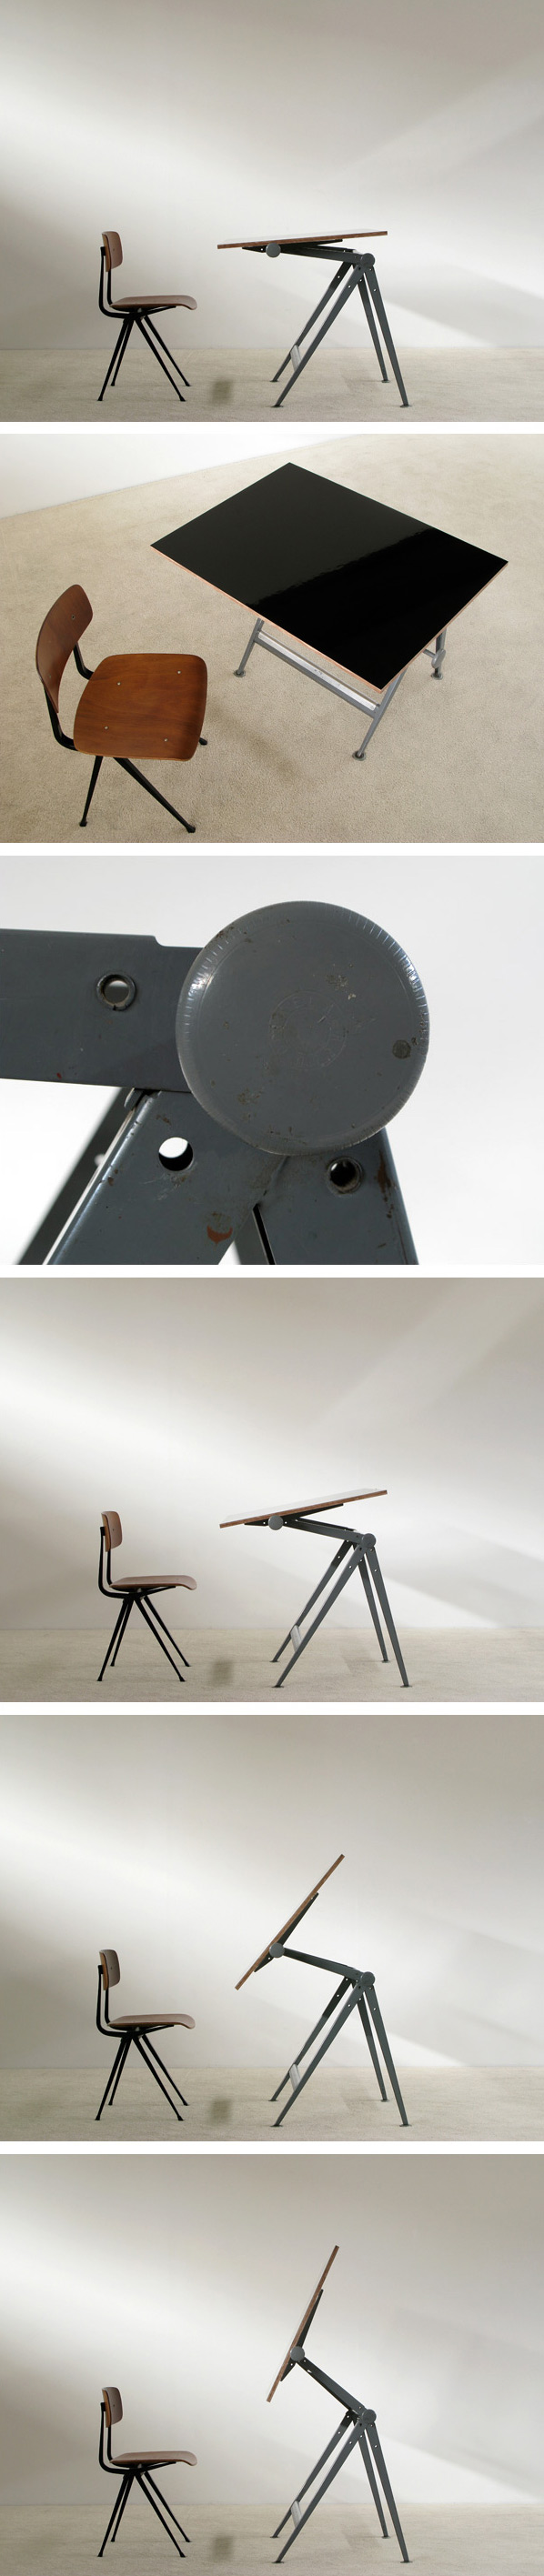 Industrial Reply drafting table and chair Wim Rietveld Large